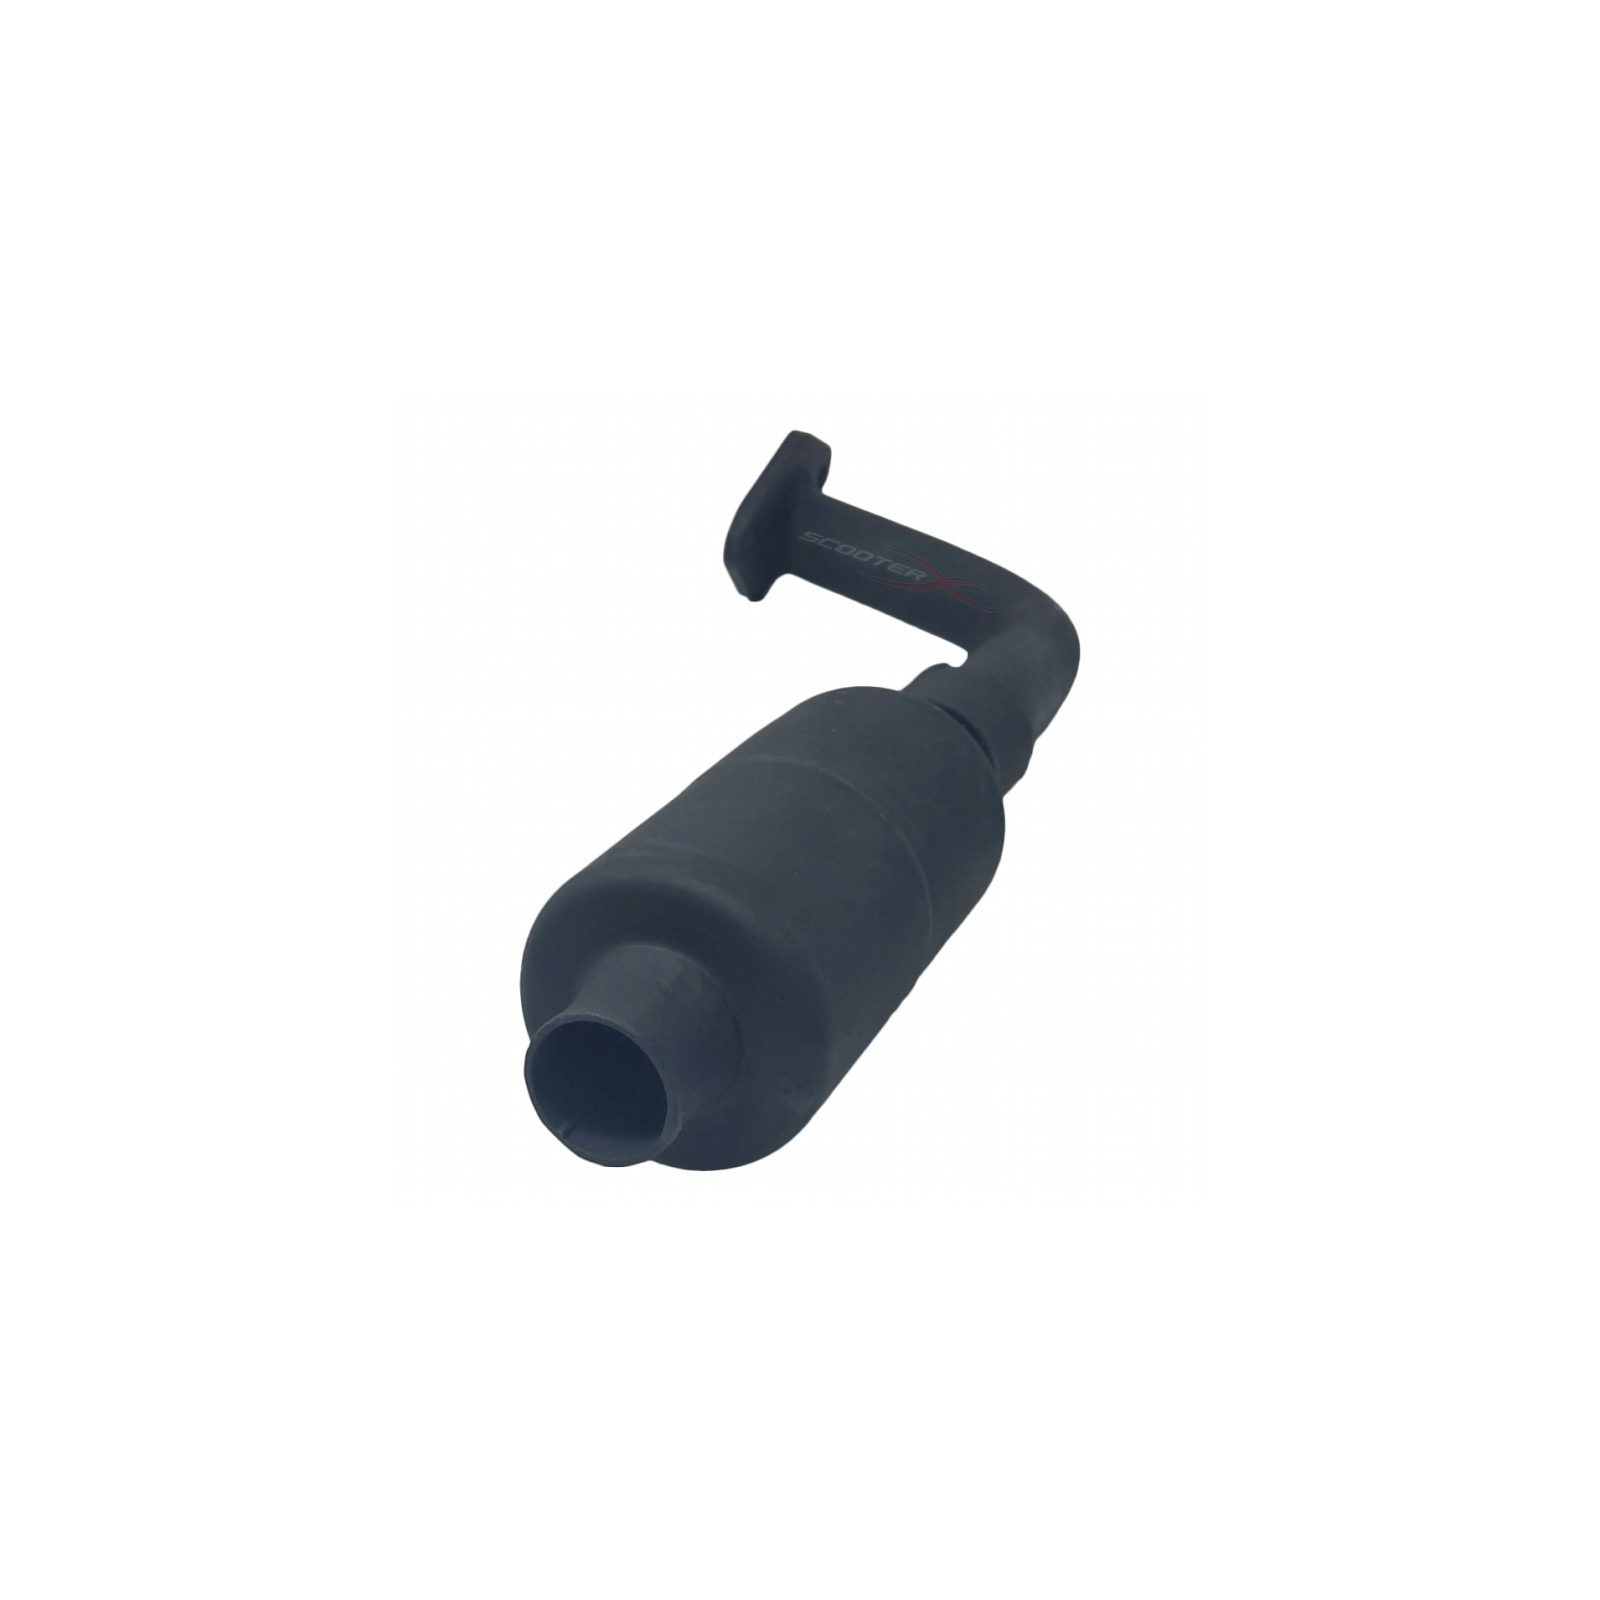 Performance Exhaust Pipe For Sport Kart Scooterx